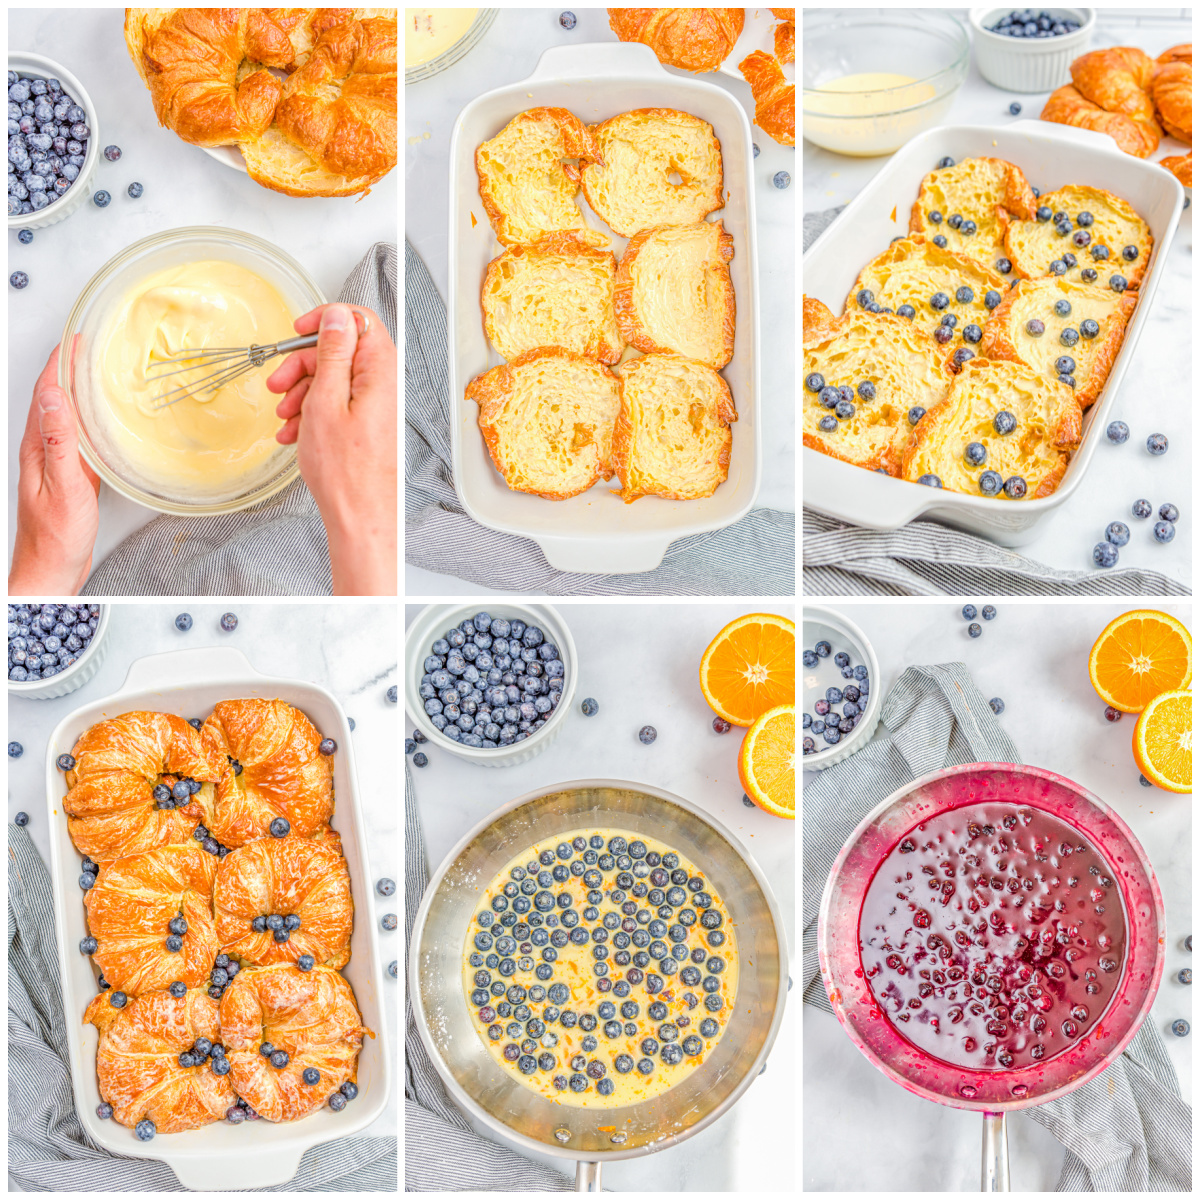 Step by step photos on how to make Blueberry Croissant French Toast